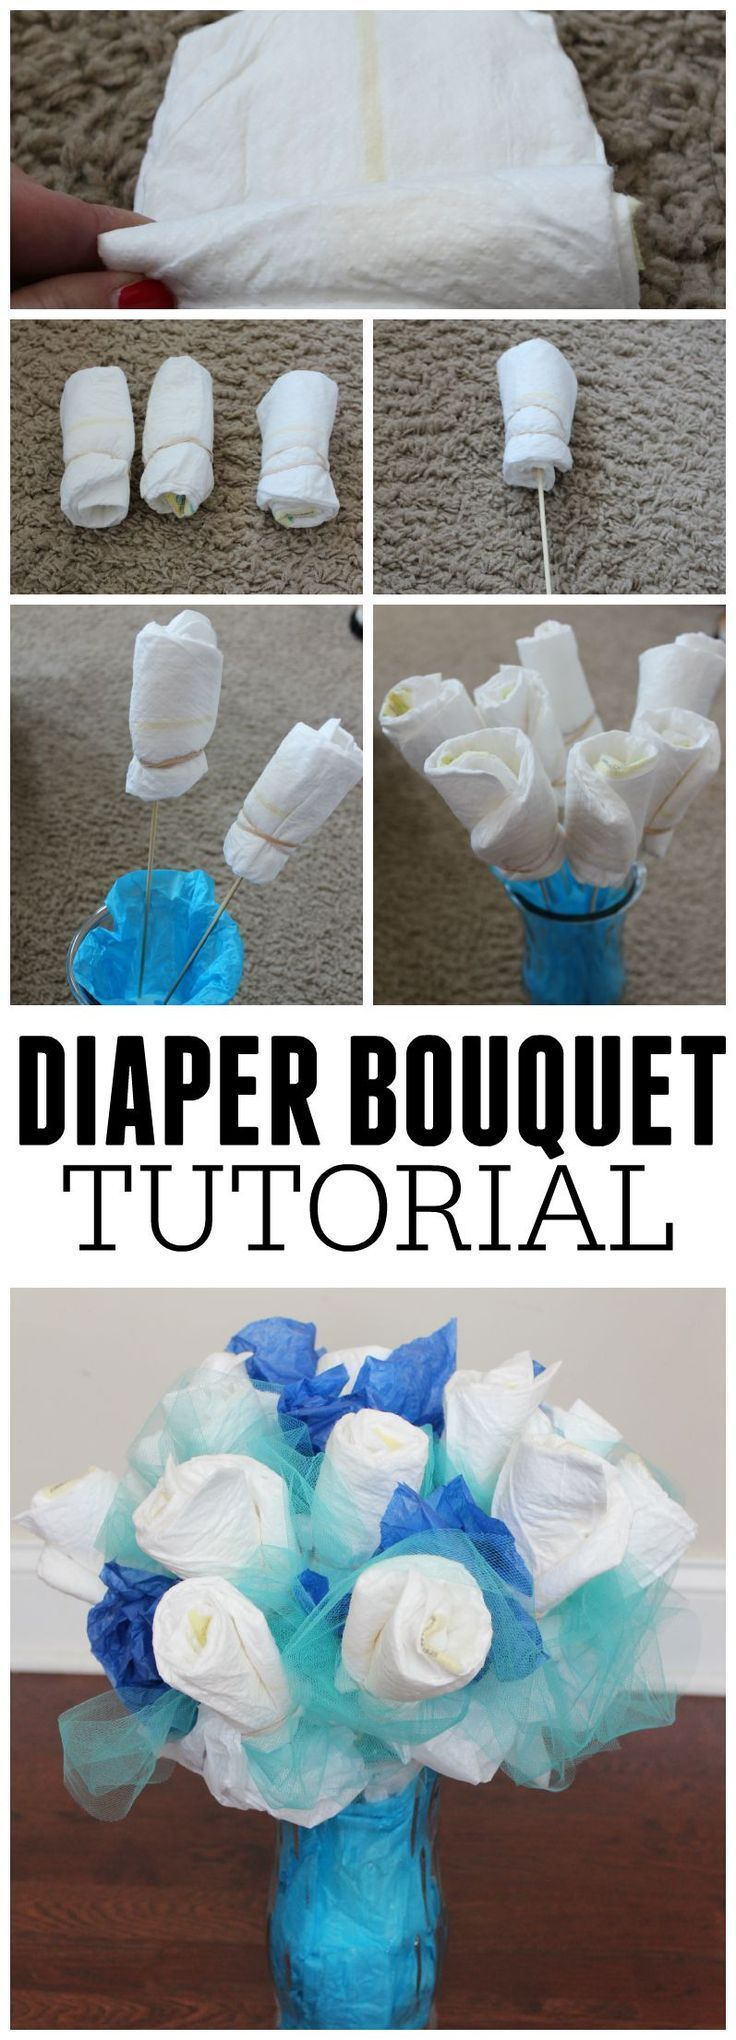 how to make a diaper bouquet picture tutorial baby shower